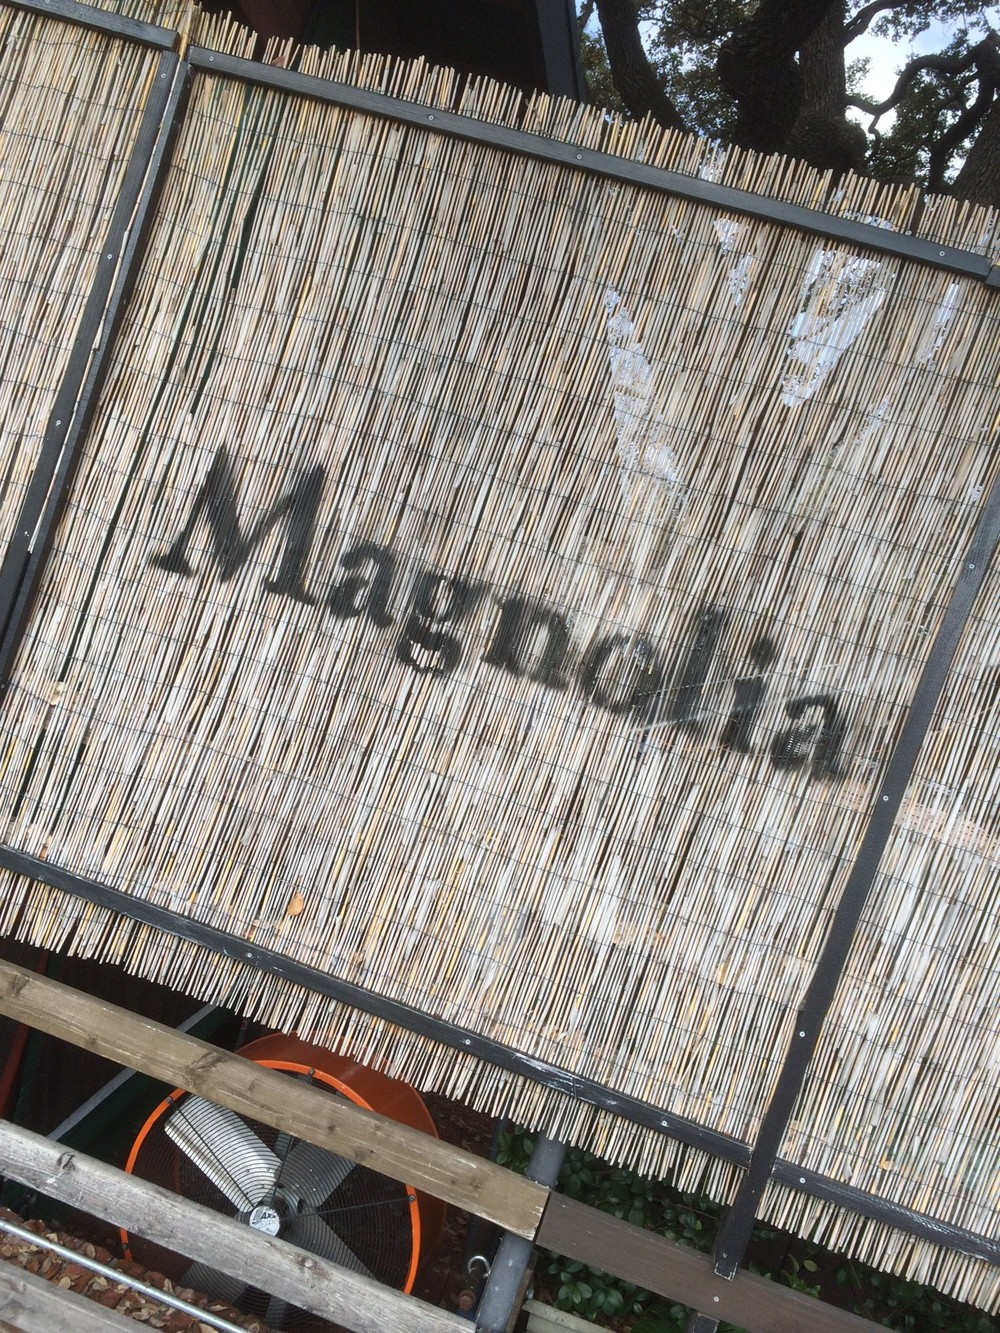 Breakfast: Magnolia Café South, 24-h open diner